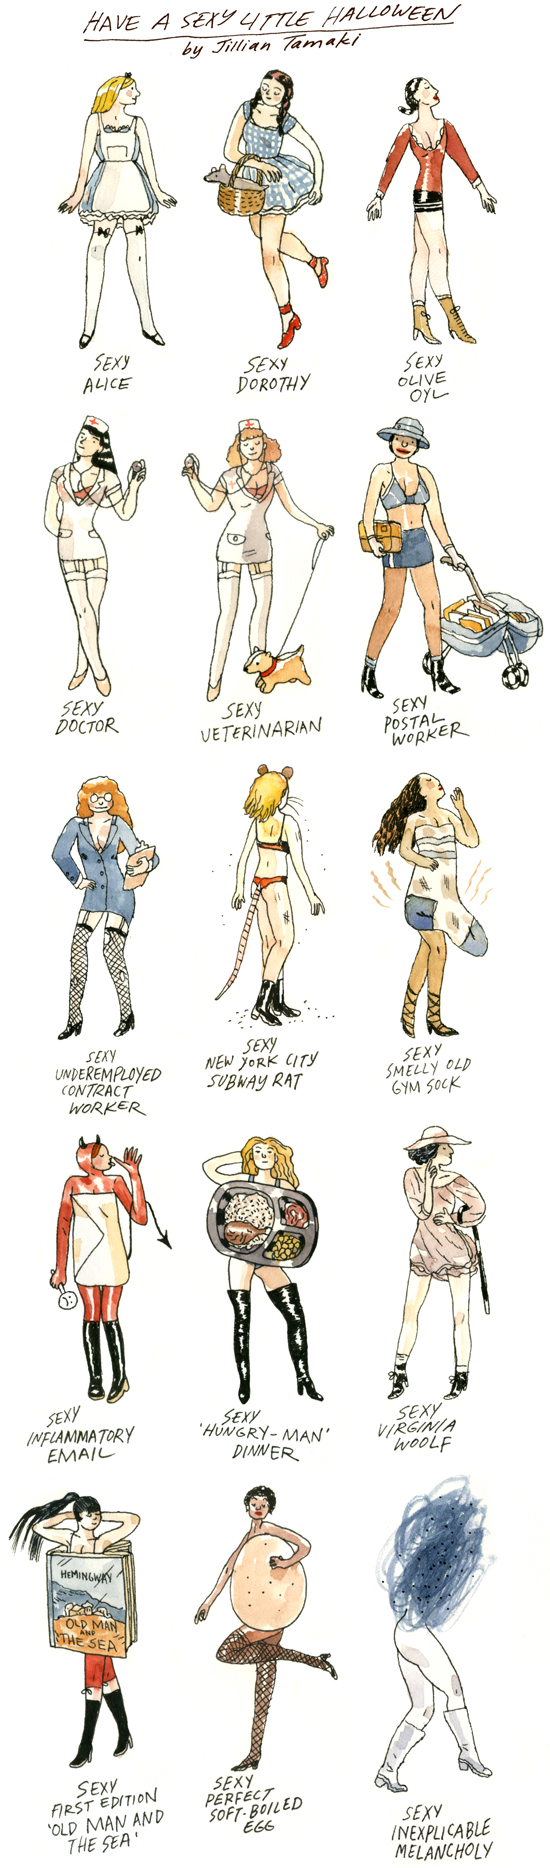 Jillian Tamaki Finds Humor in Sex: sexyhalloween.jpg